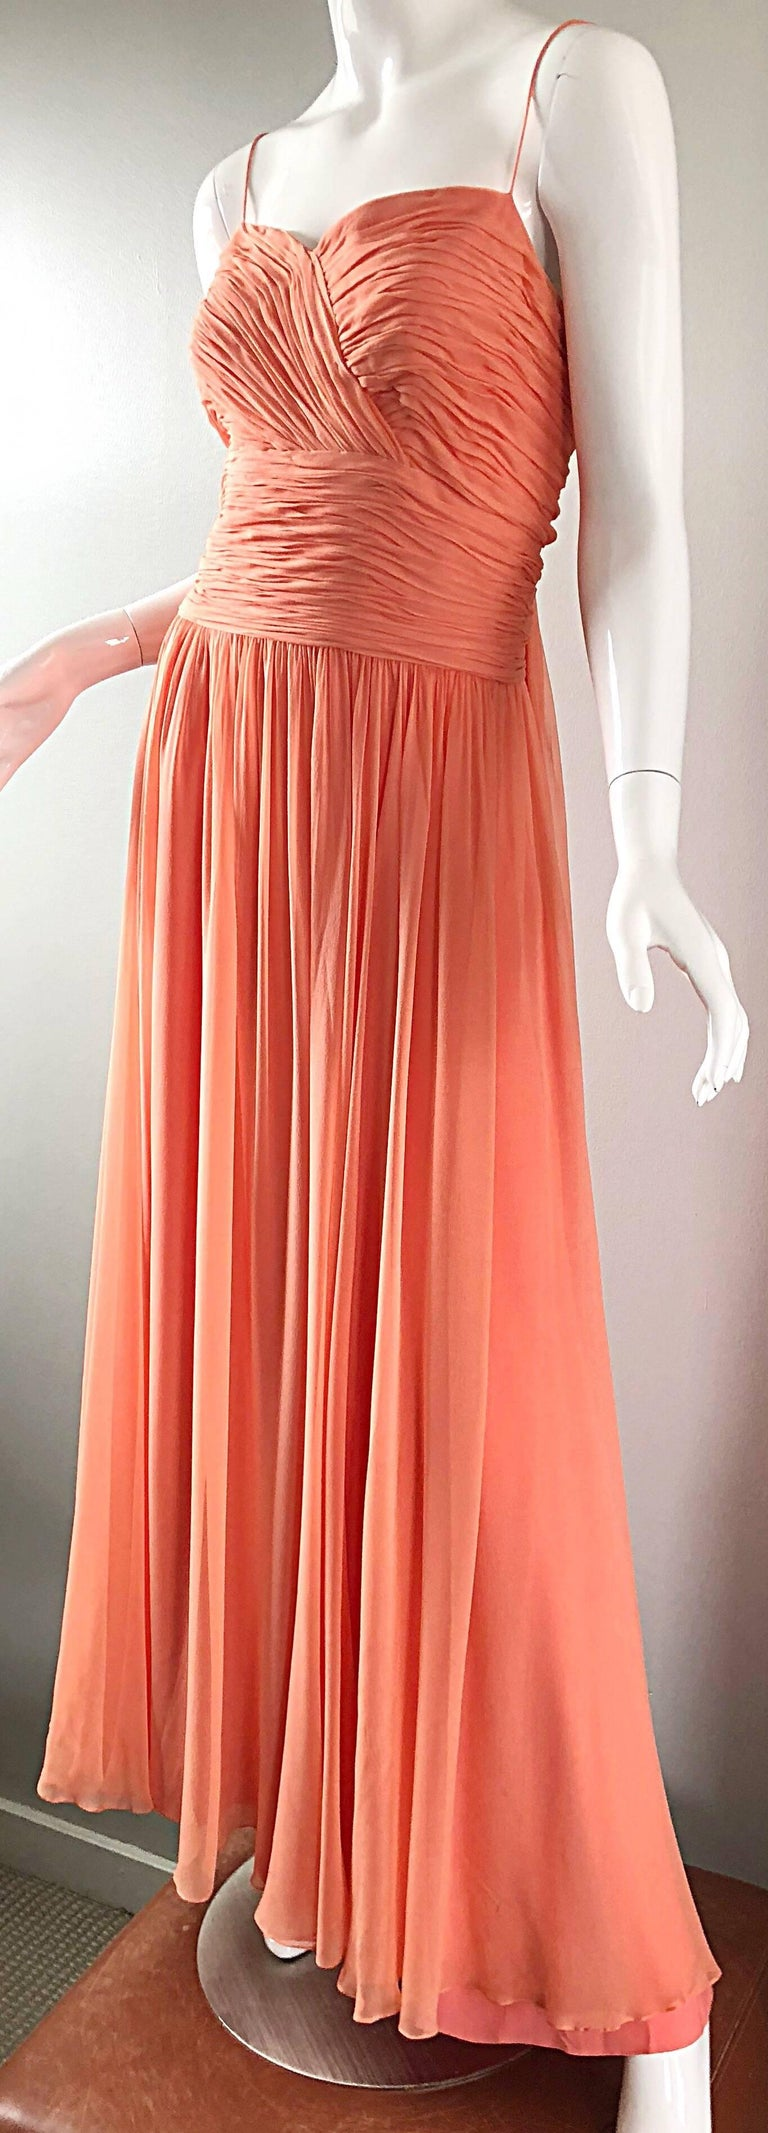 Gorgeous 1950s Saks 5th Ave. Salmon / Coral Pink Silk Chiffon Vintage 50s Gown For Sale 2